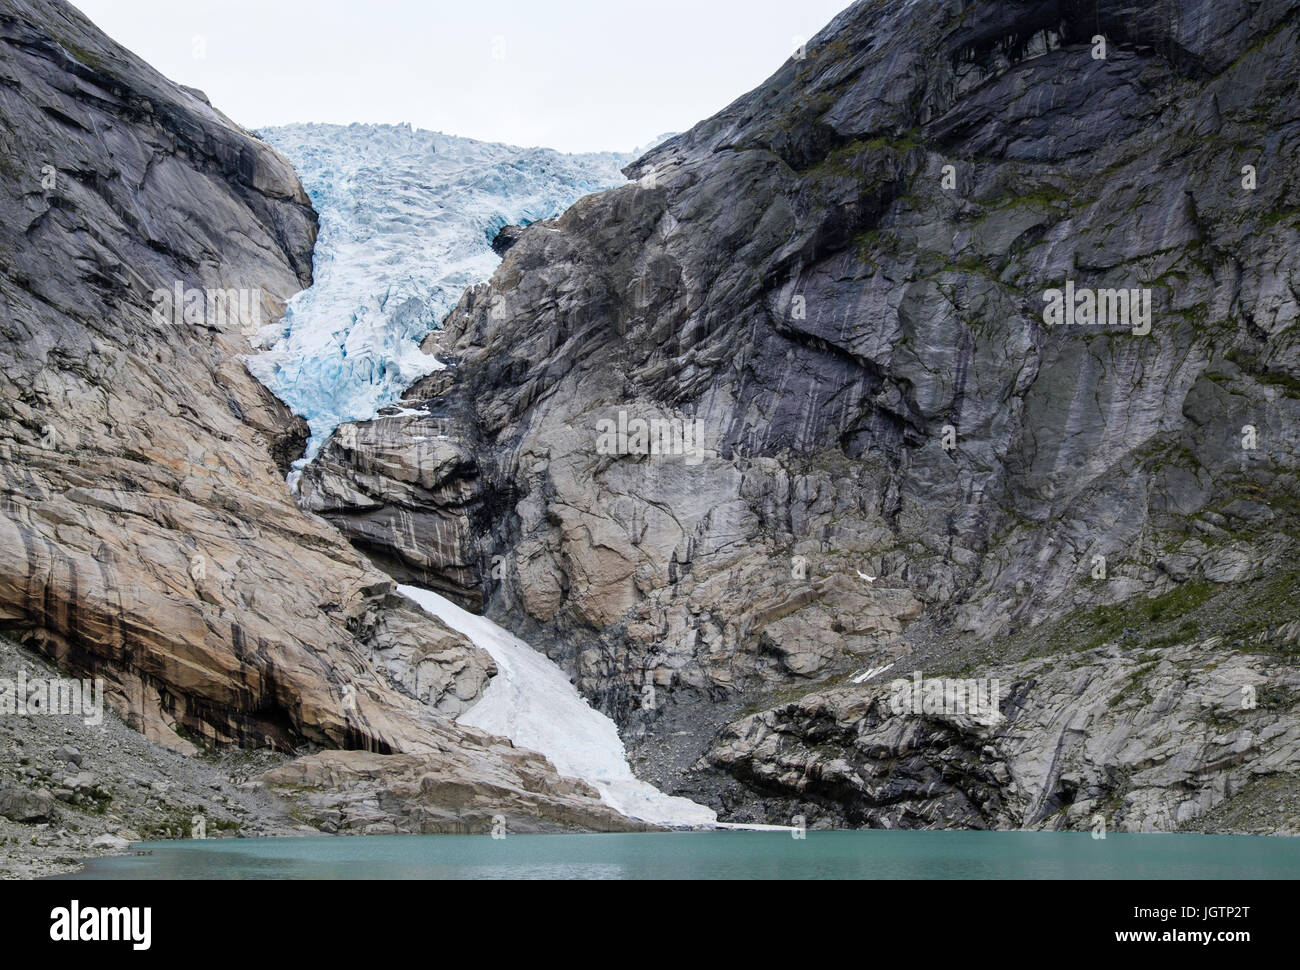 Briksdalsbreen or Briksdal glacier is an arm of Jostedalsbreen glacier above Briksdalsbrevatnet glacial lake in Jostedalsbreen National Park Norway Stock Photo